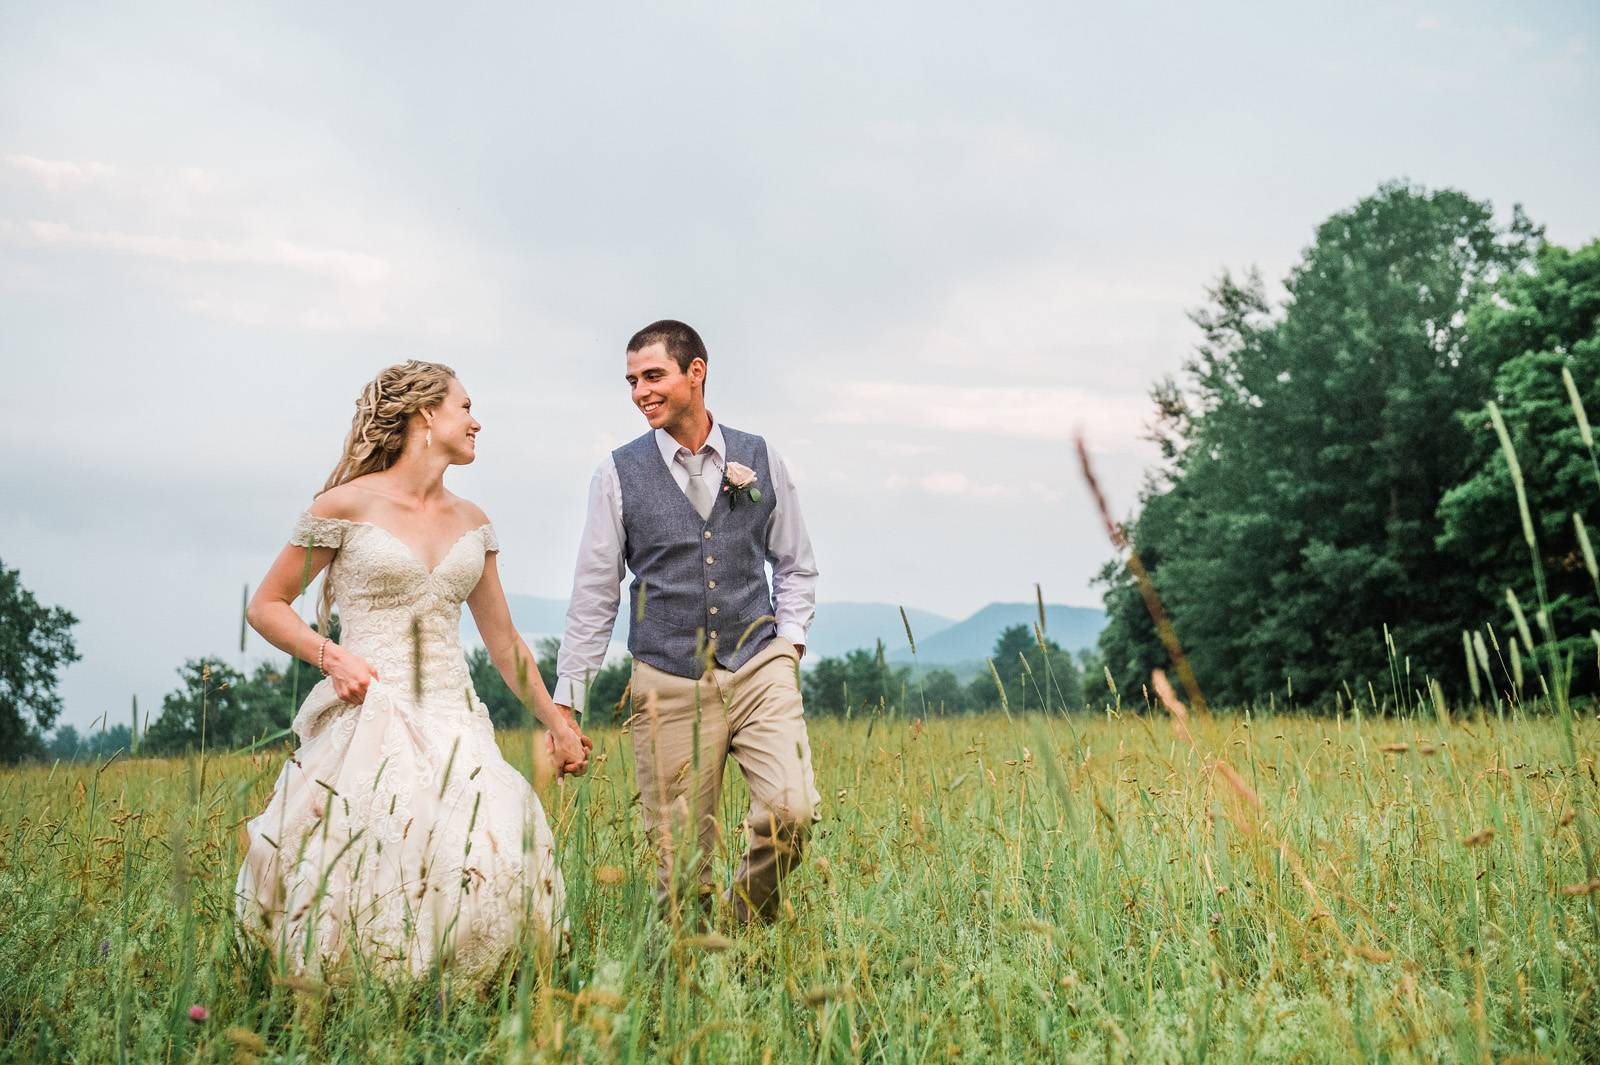 Couple walking through field on wedding day